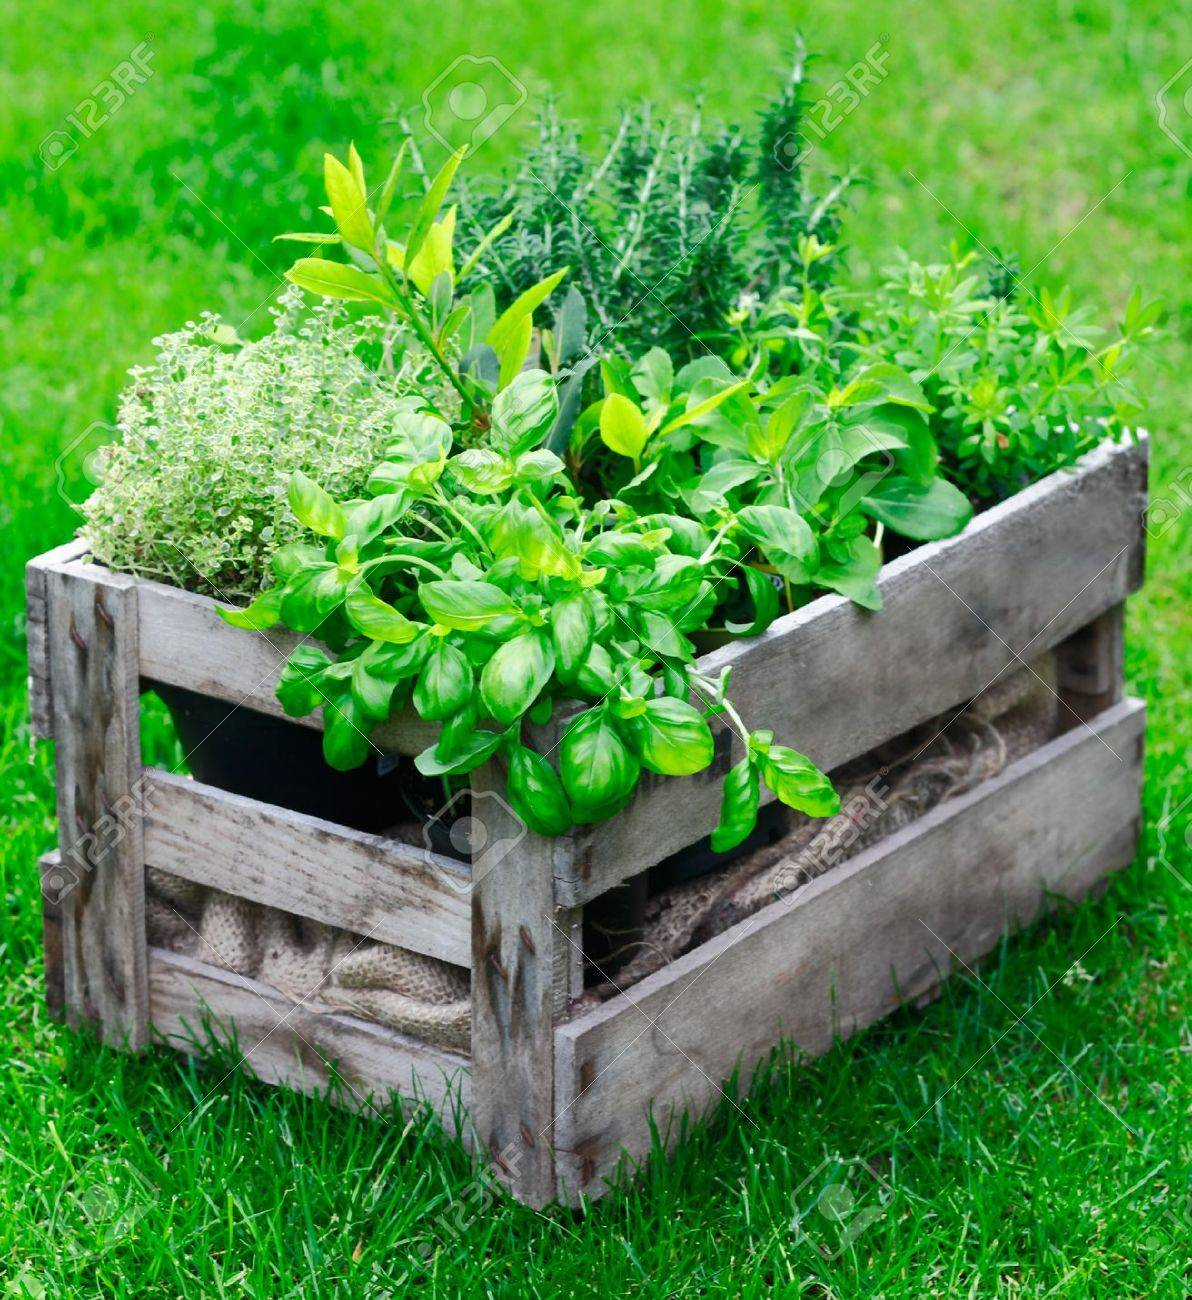 Ornamental Kitchen Garden Rustic Wooden Crate On A Lush Garden Lawn Filled With Fresh